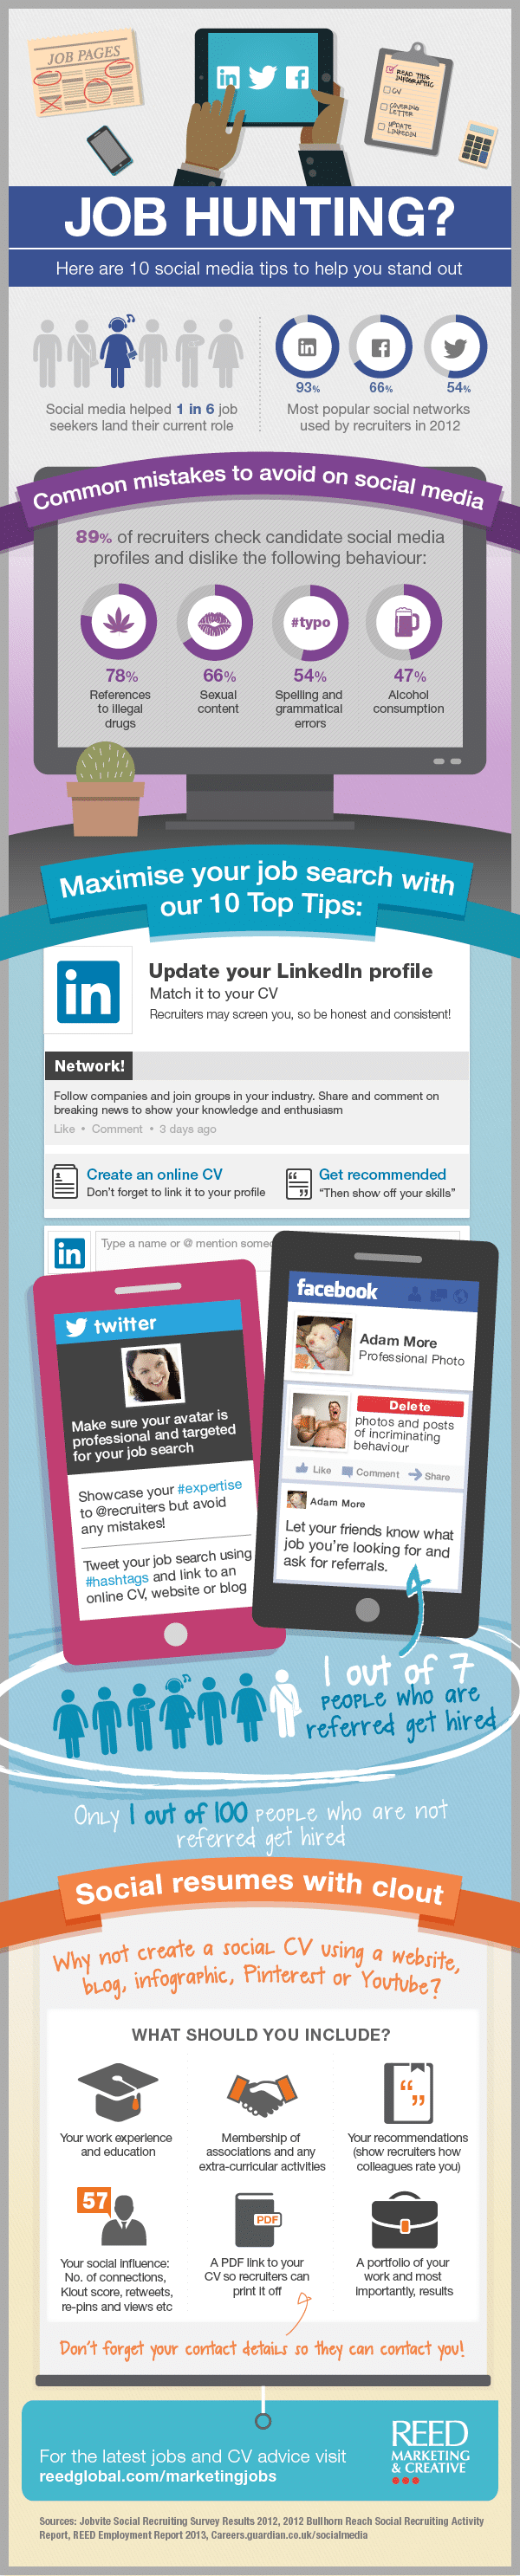 job-hunting-social-media-infographic